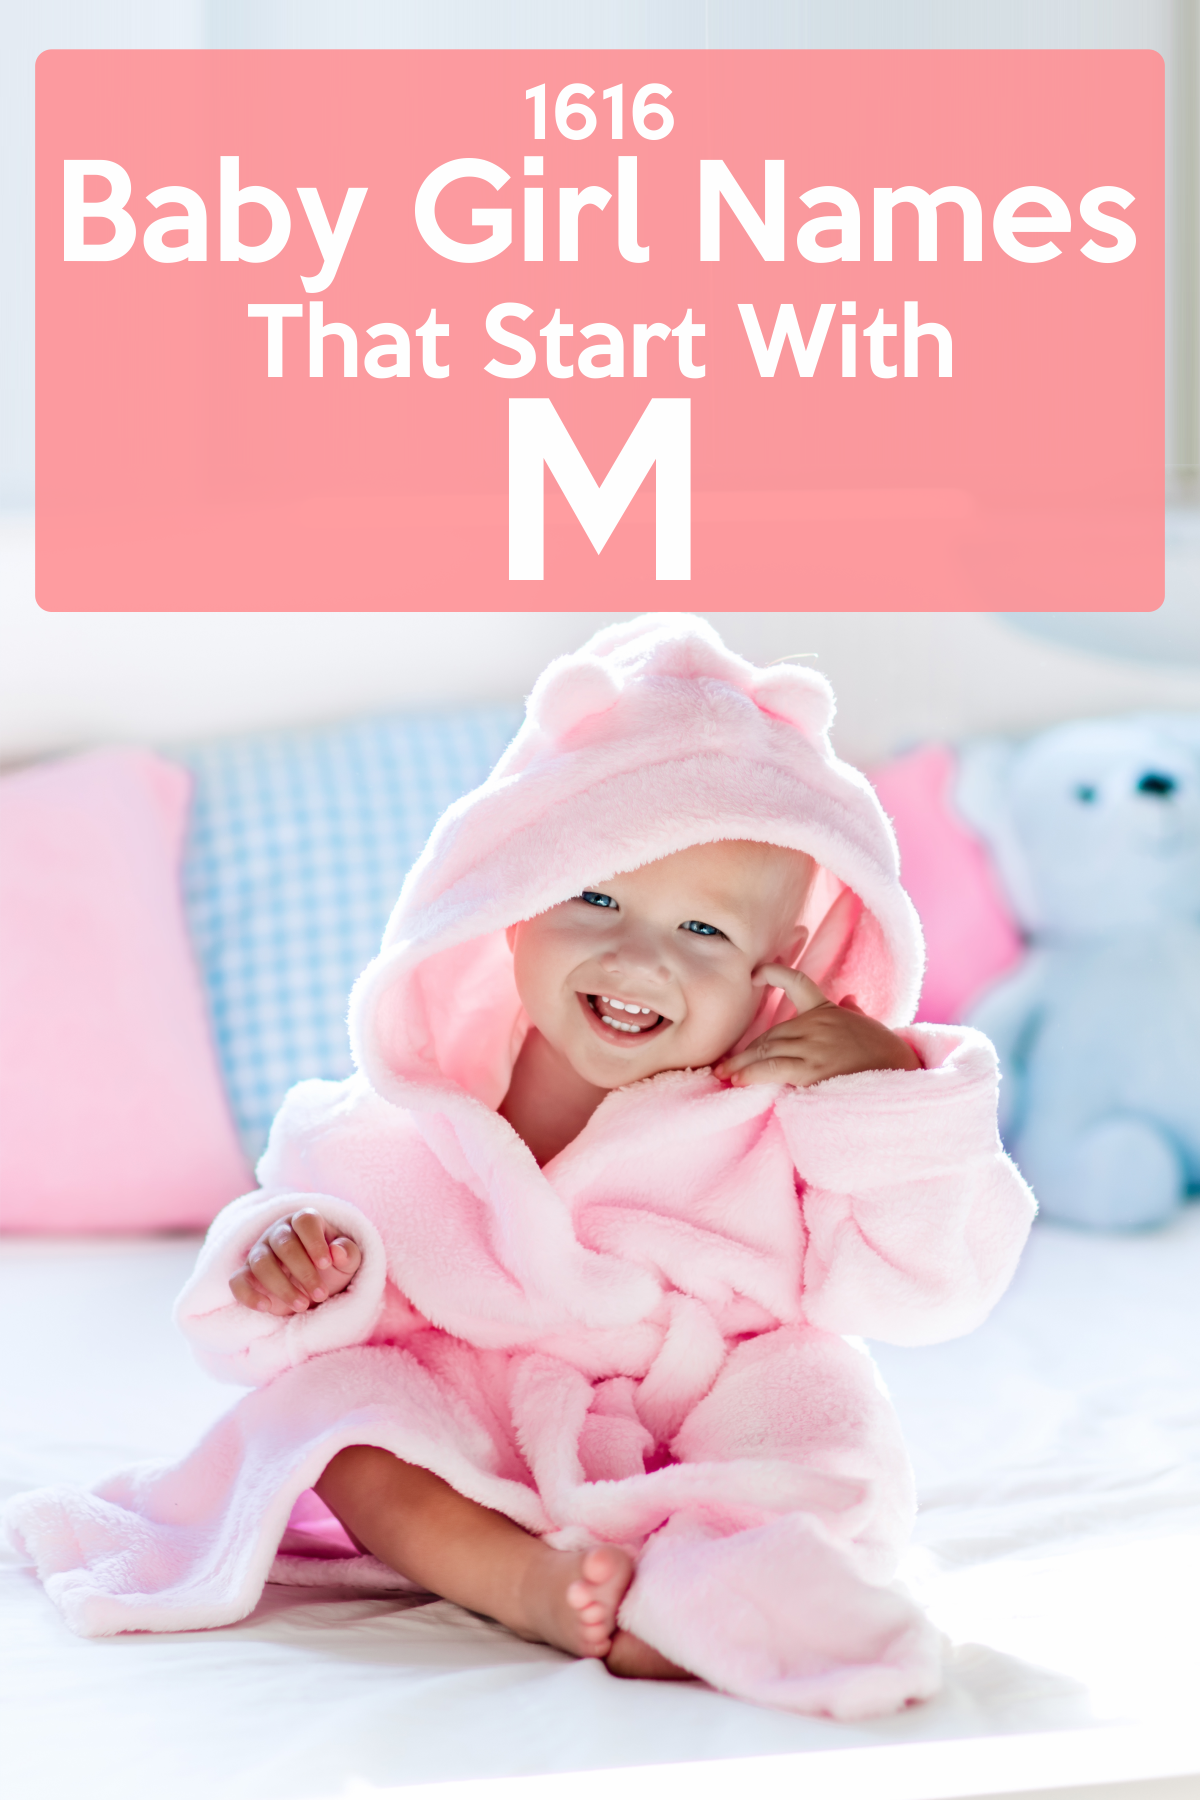 Pin by Brittany Frazier on Baby | M baby girl names, Top